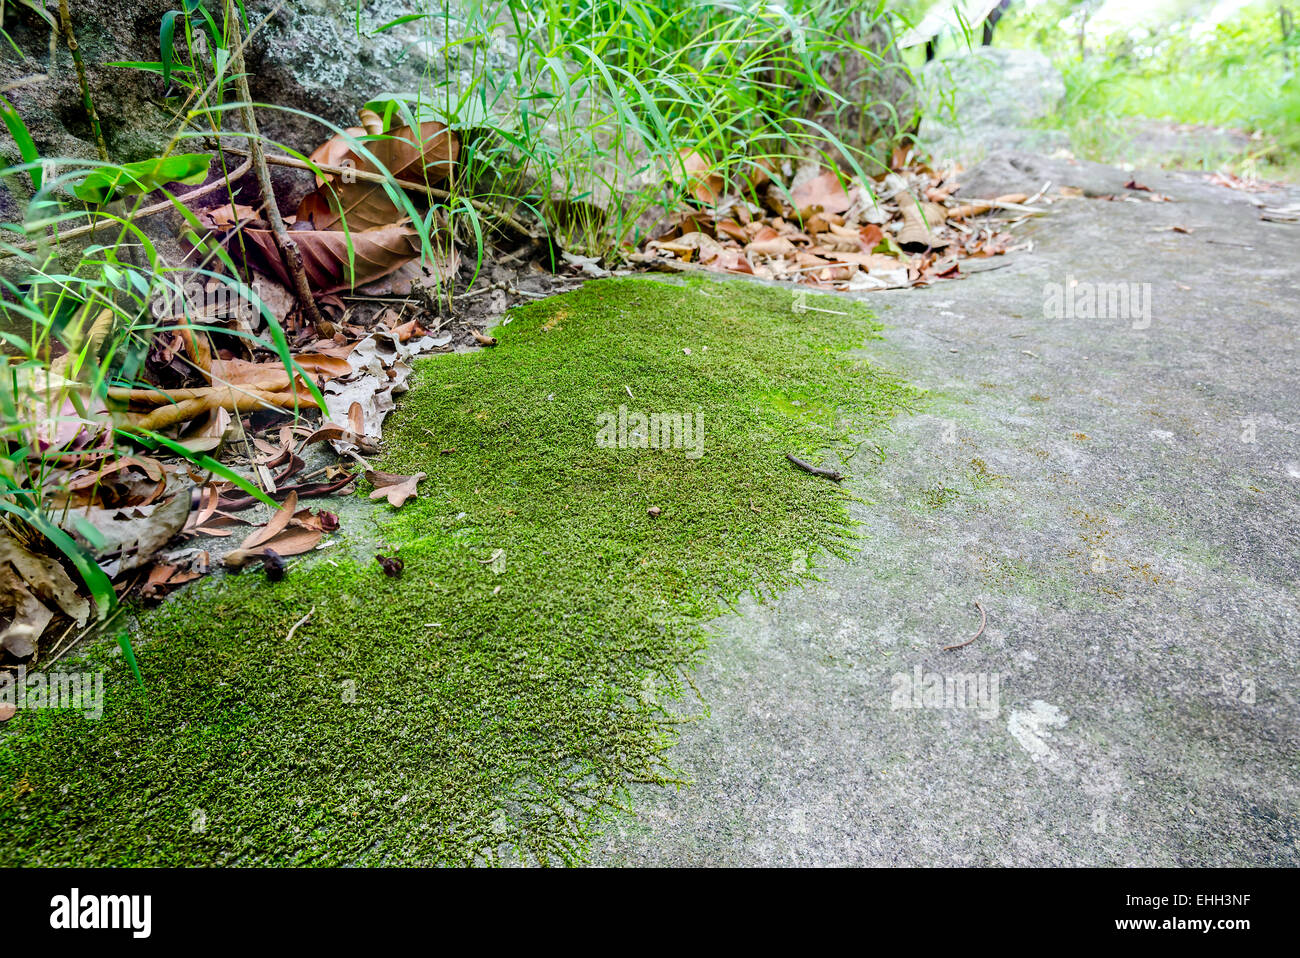 Moss Mats Moss Small Flowerless Plant That Usually Grow In Dense Green